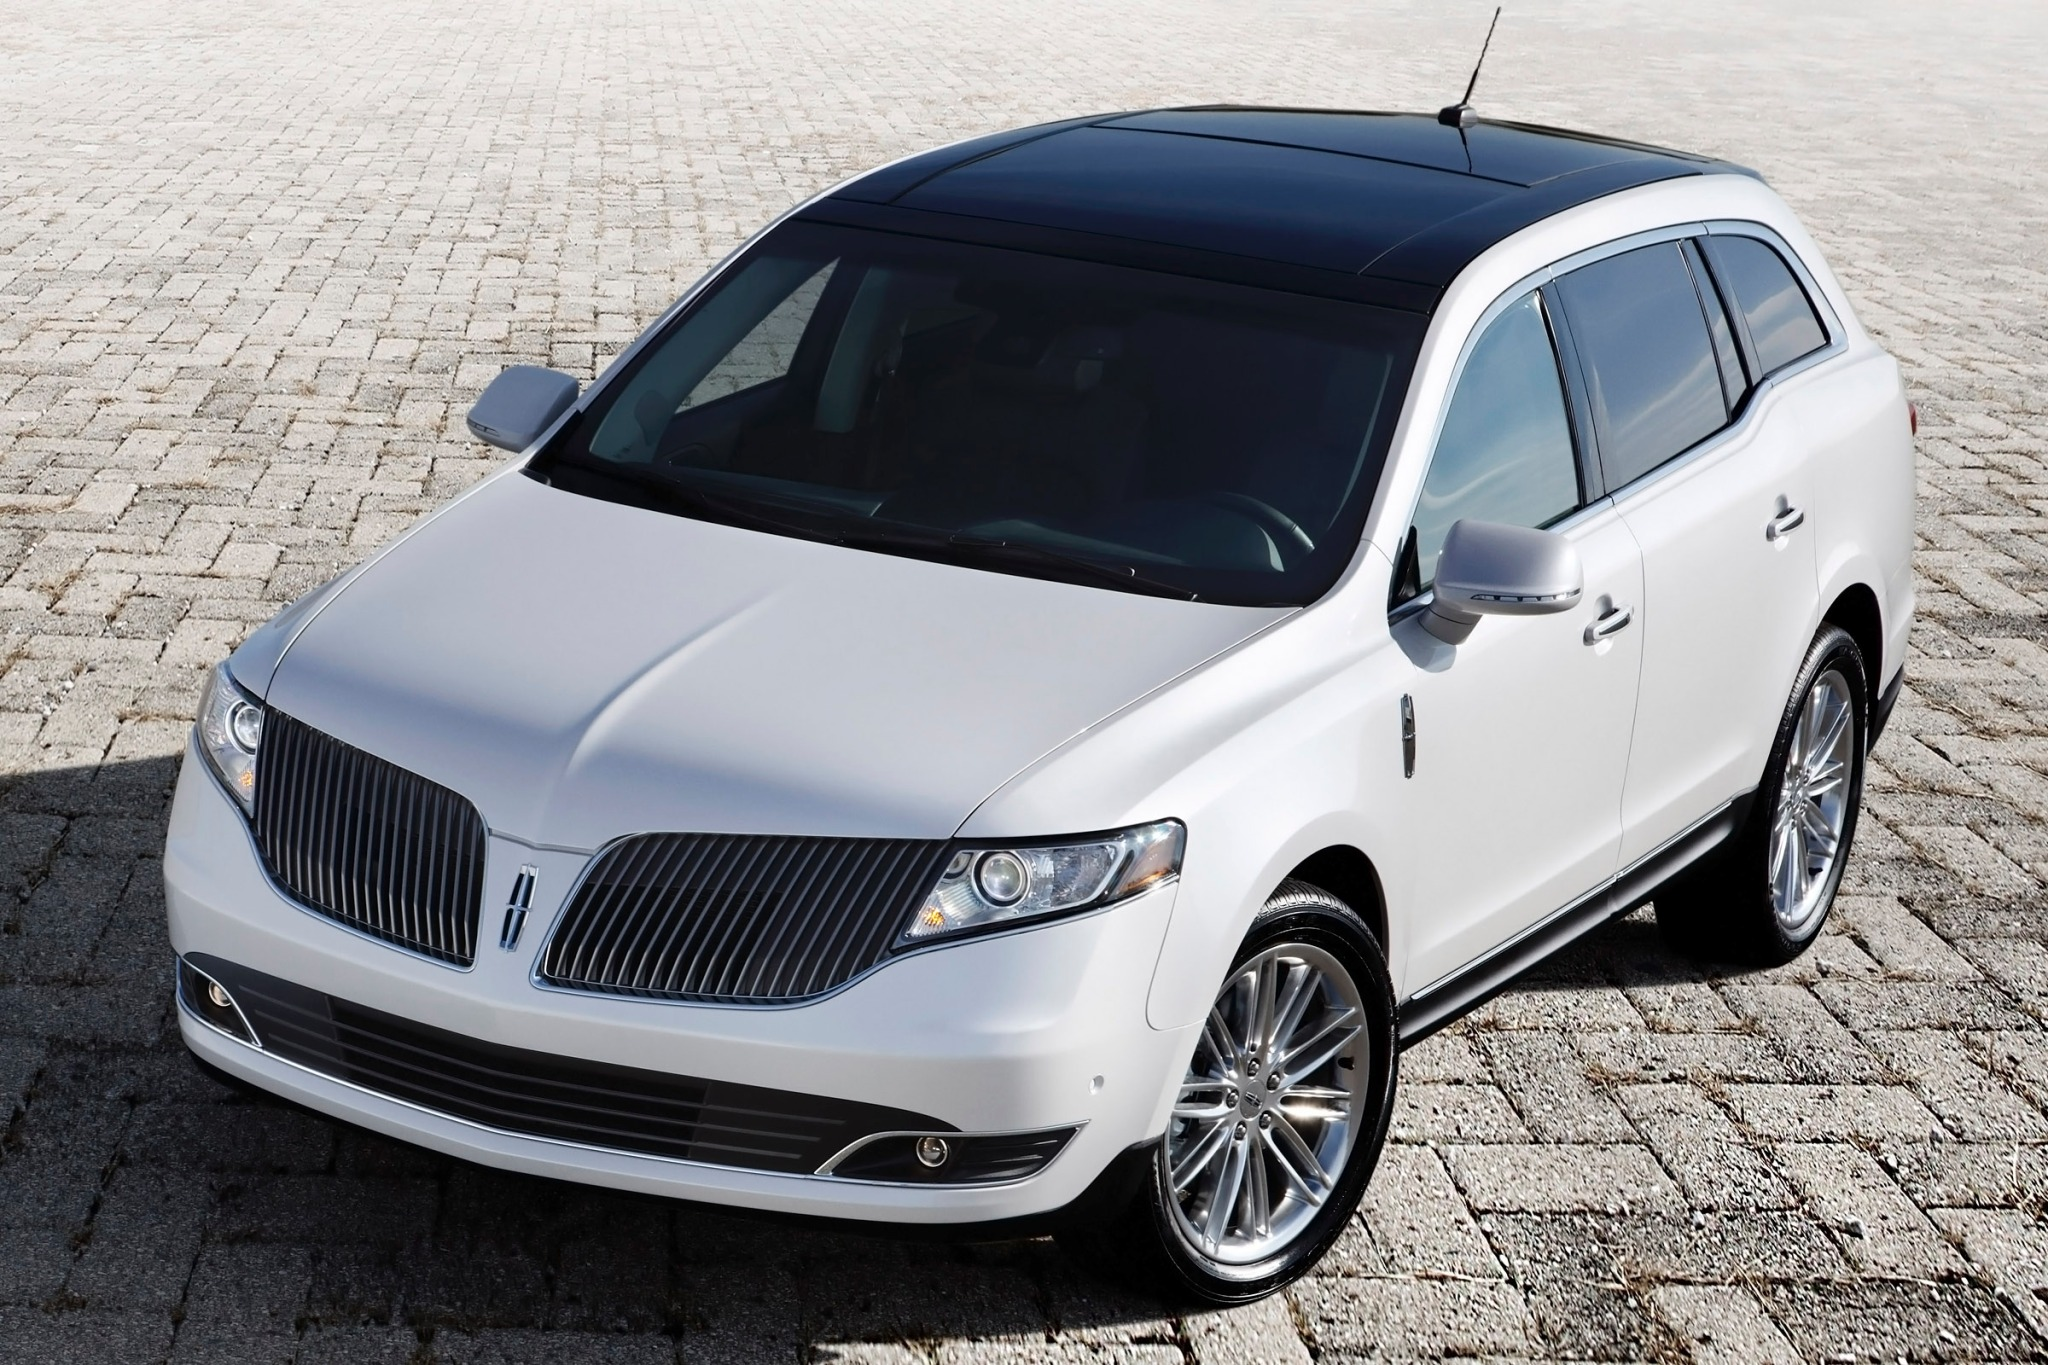 2014 Lincoln MKT Wagon Ex exterior #4